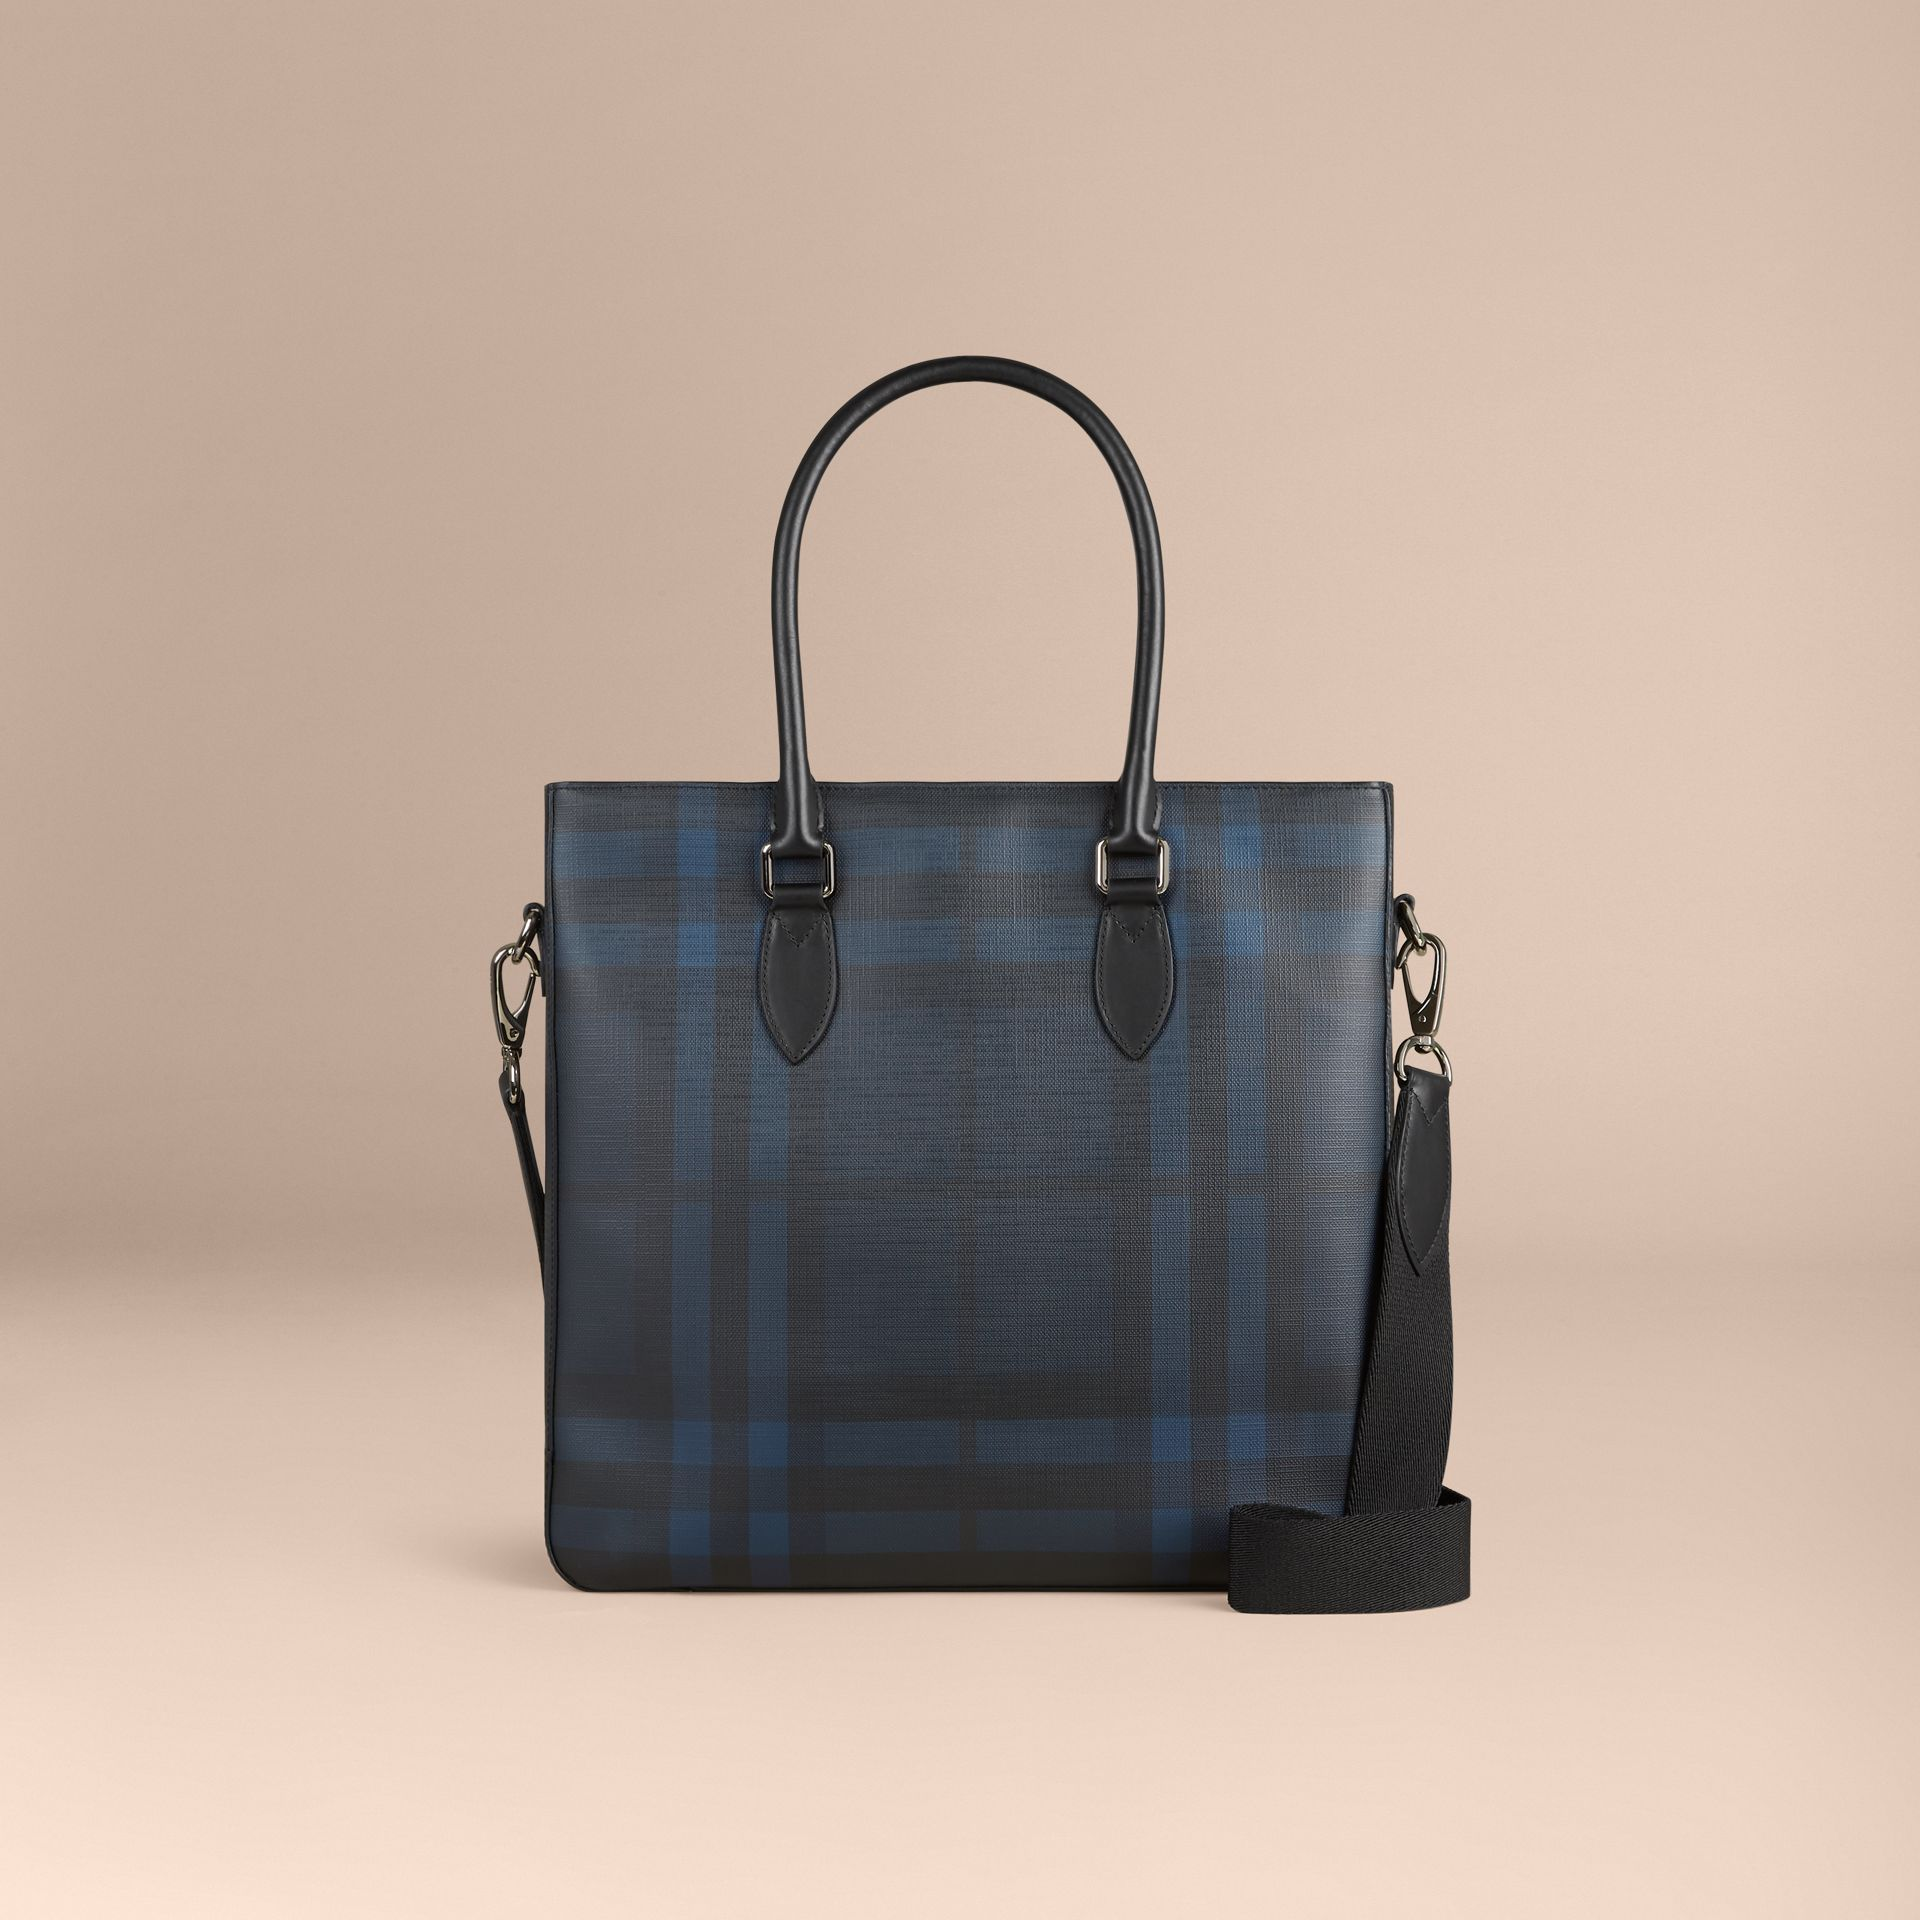 London Check Tote Bag in Navy/black - Men | Burberry Australia - gallery image 7